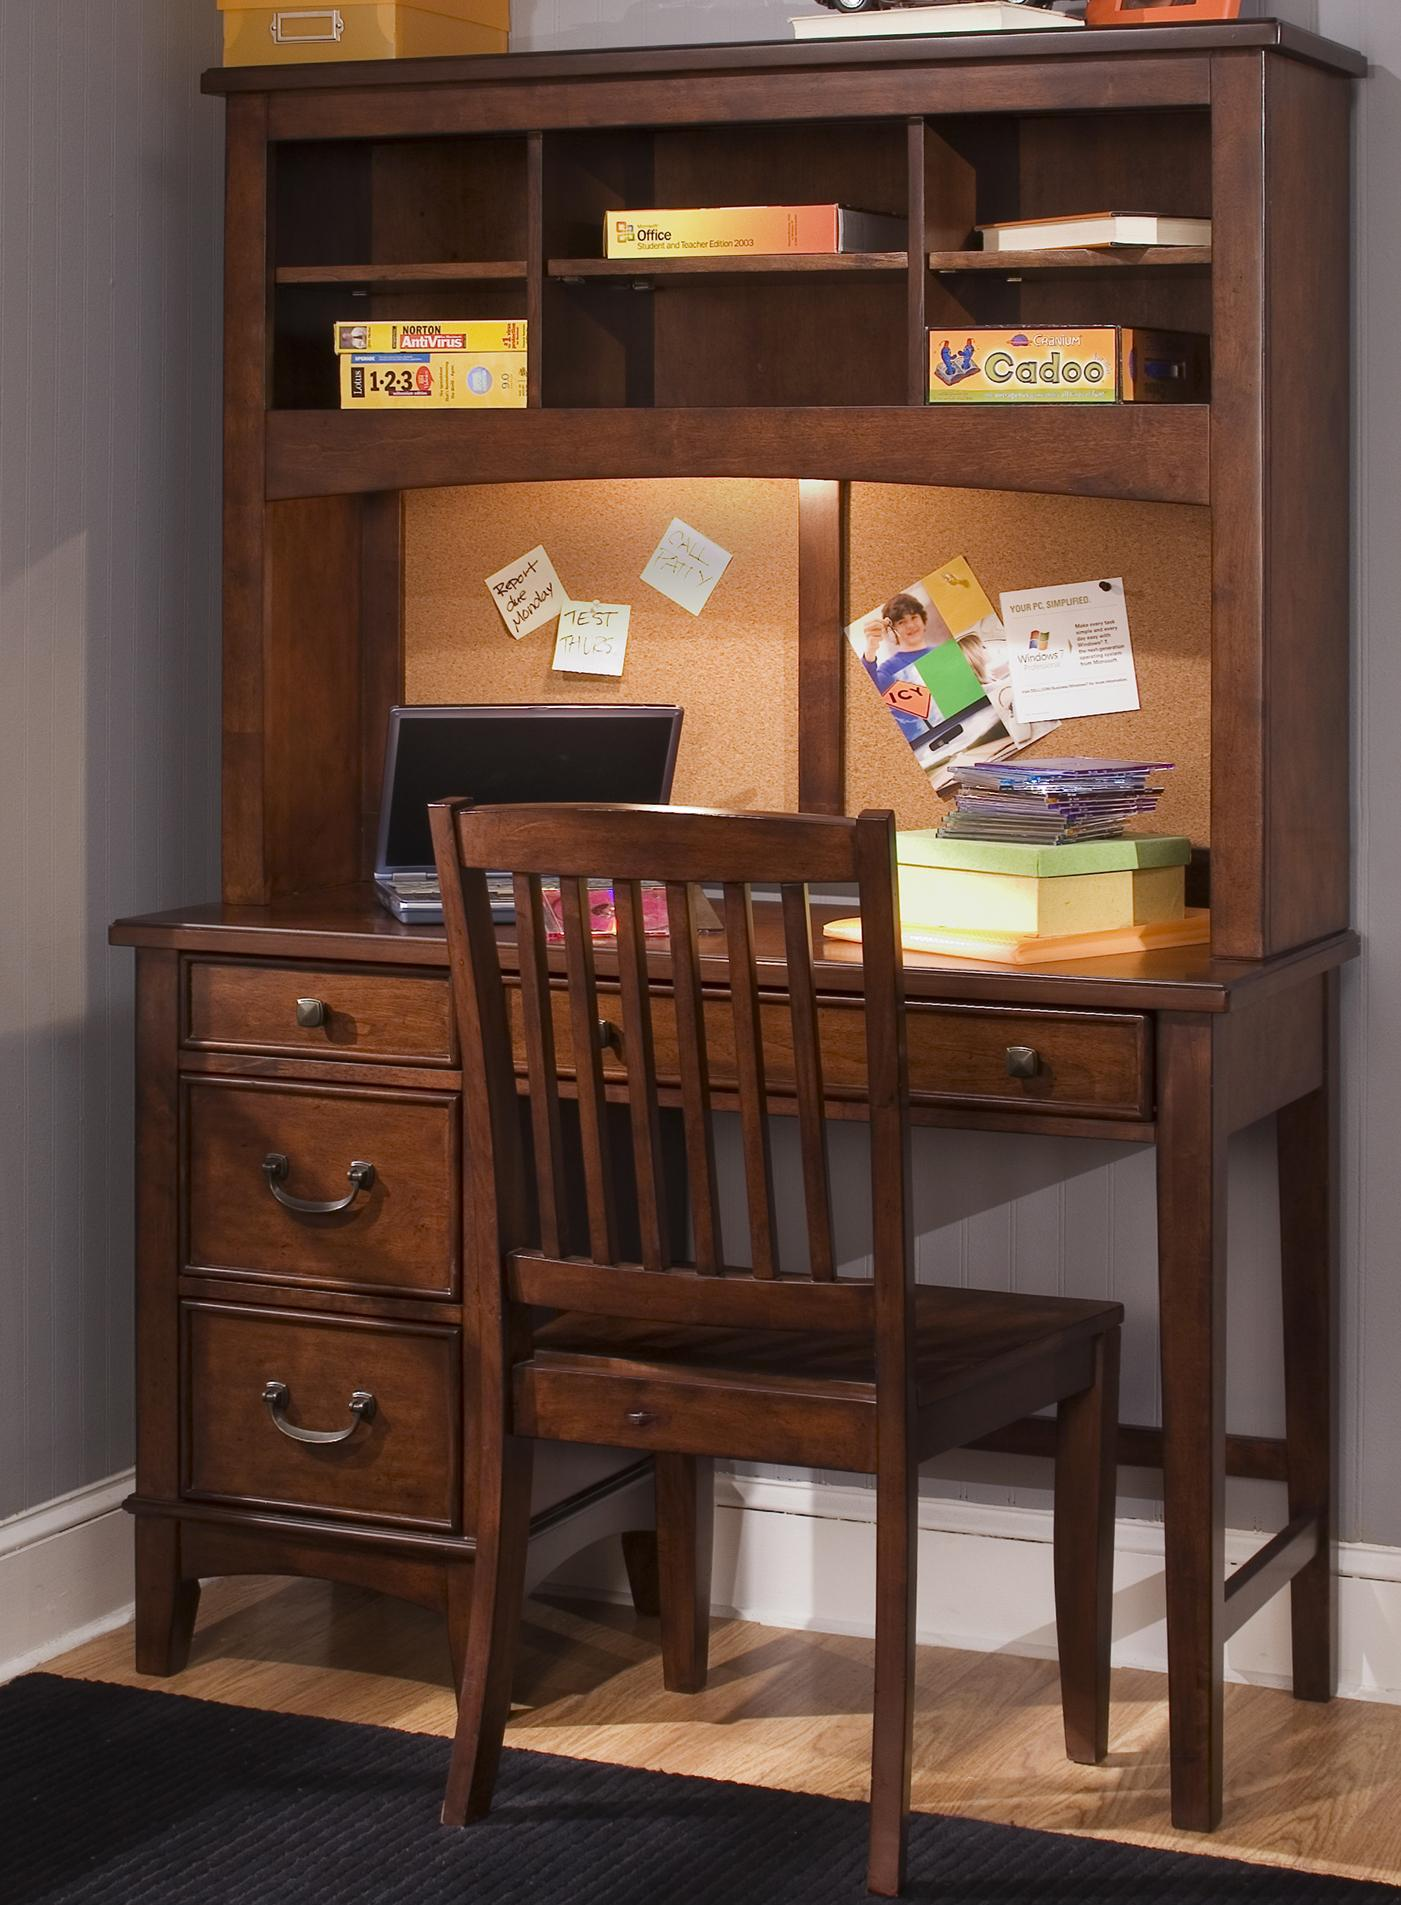 Liberty Furniture Chelsea Square Youth Student Desk - Item Number: 628-YBR-SET85